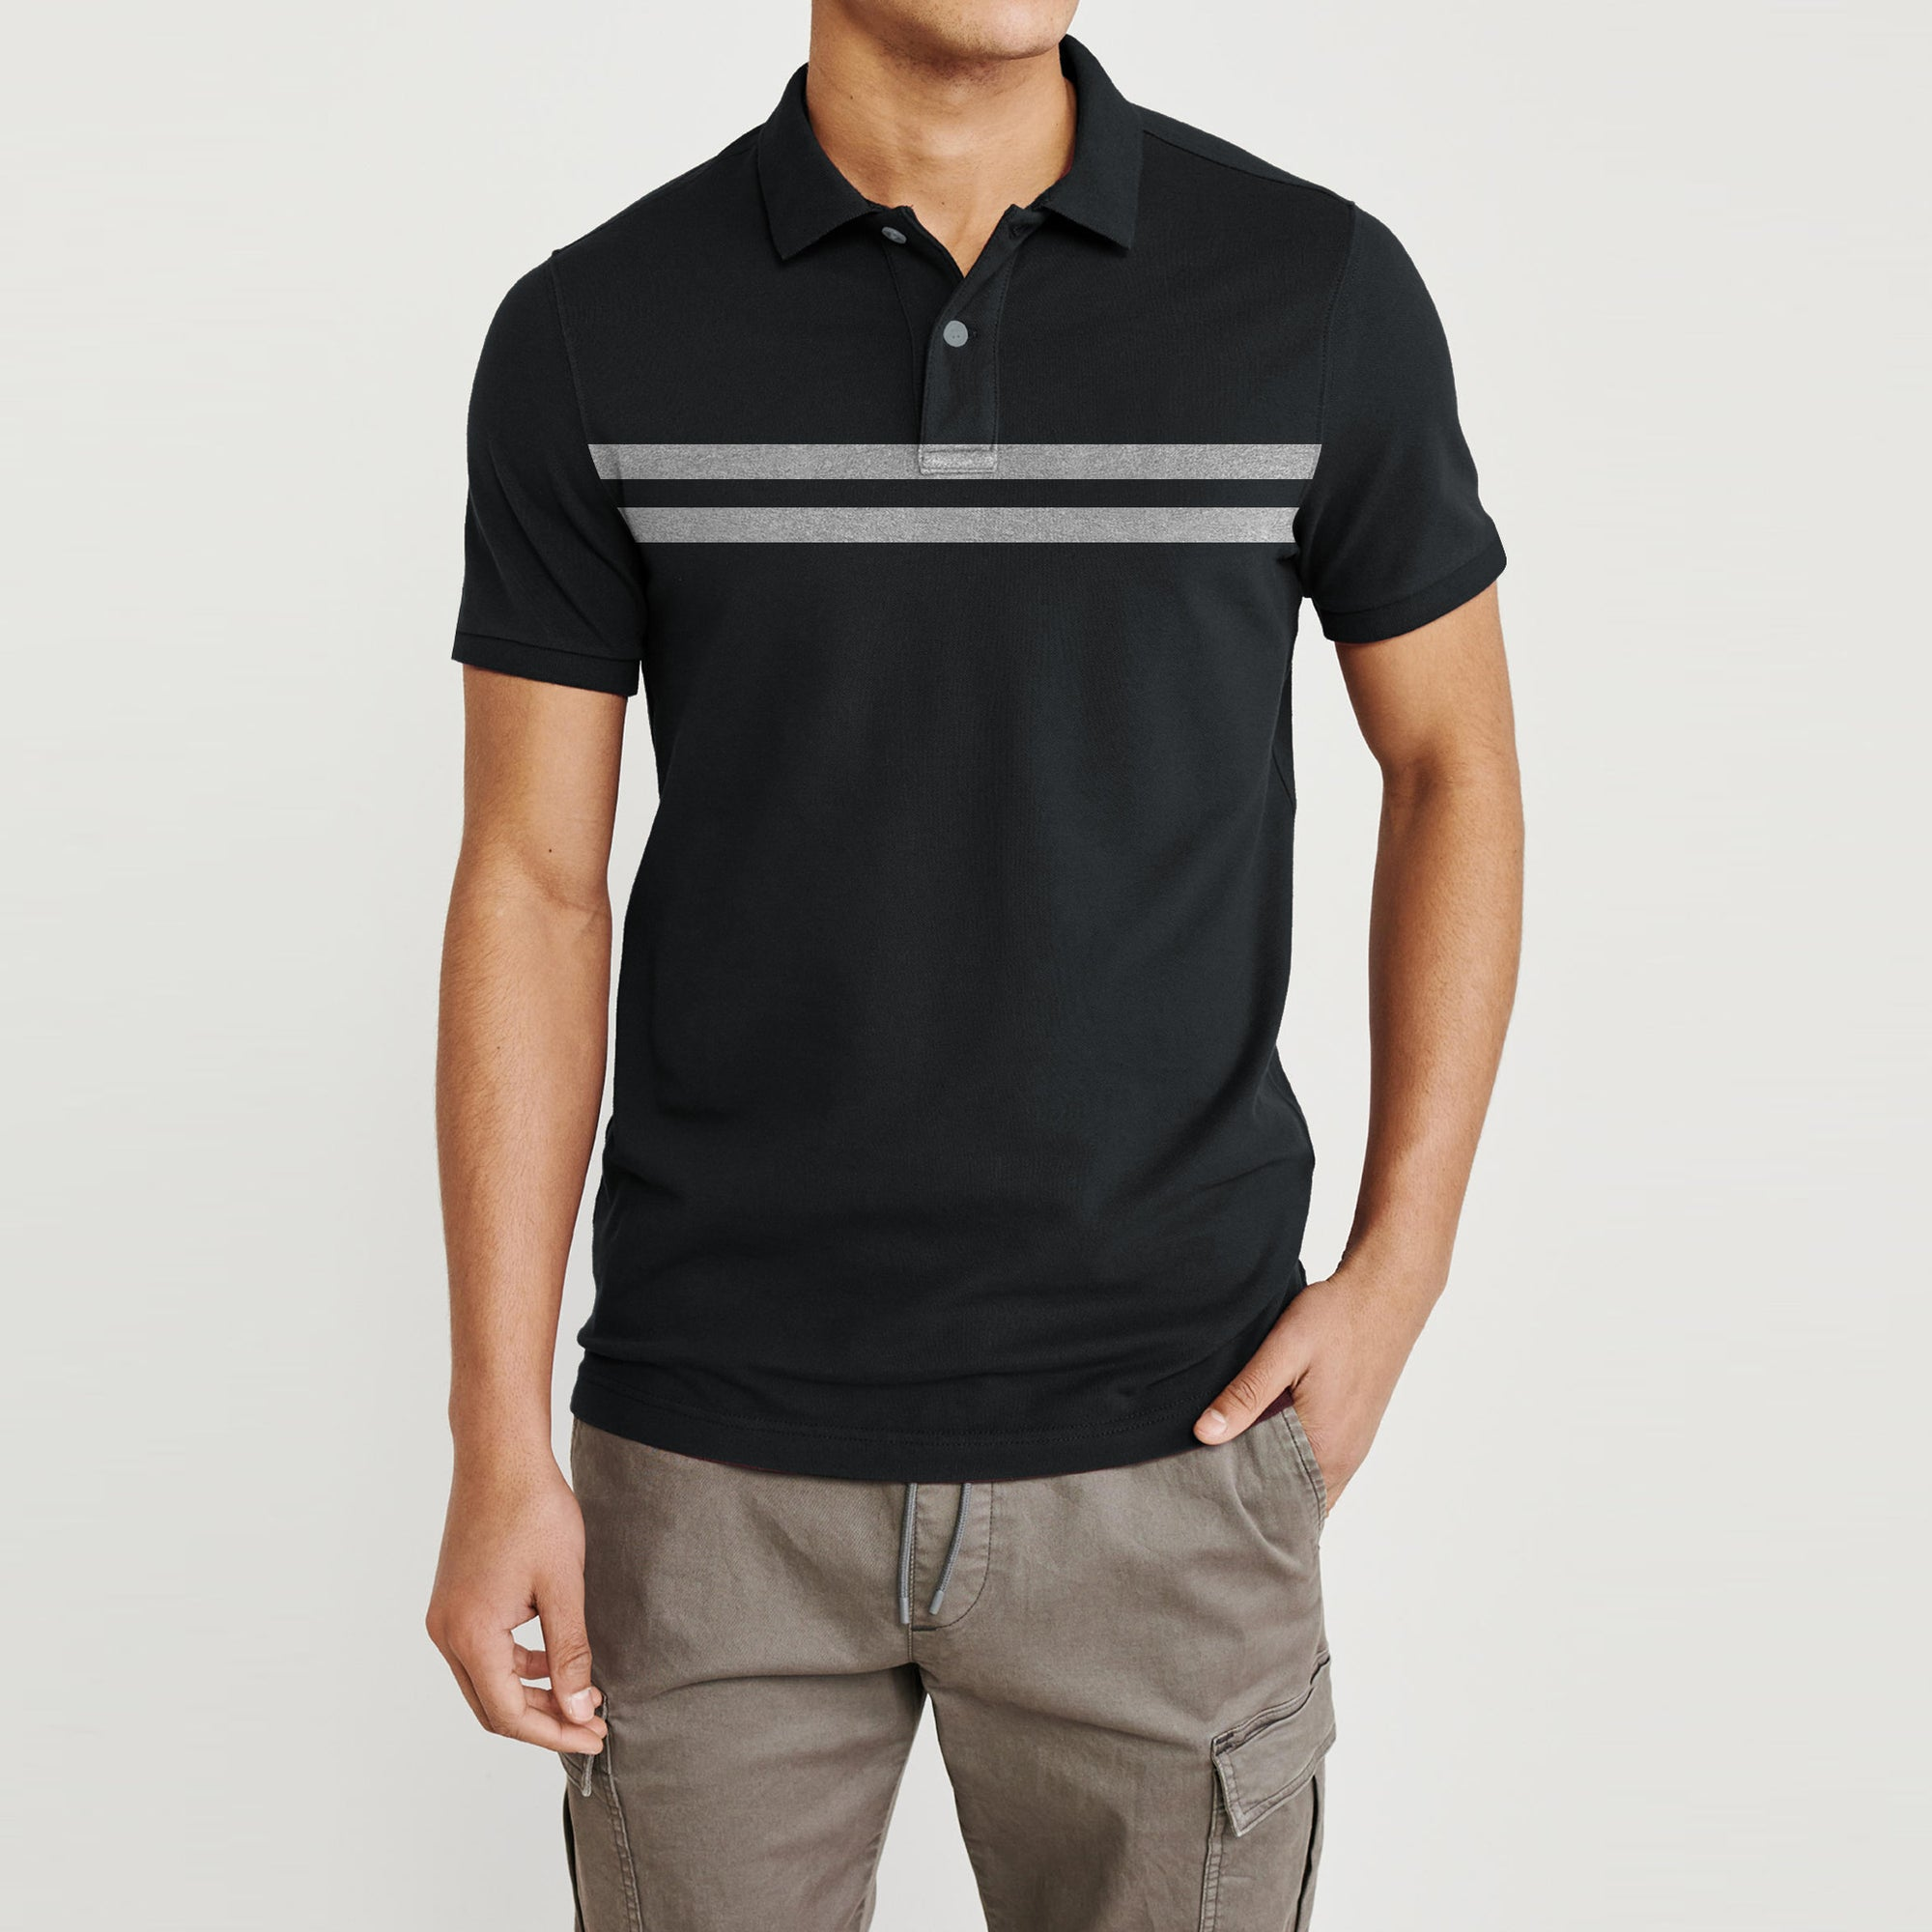 GAP Short Sleeve P.Q Polo Shirt For Men-Charcoal-BE8612